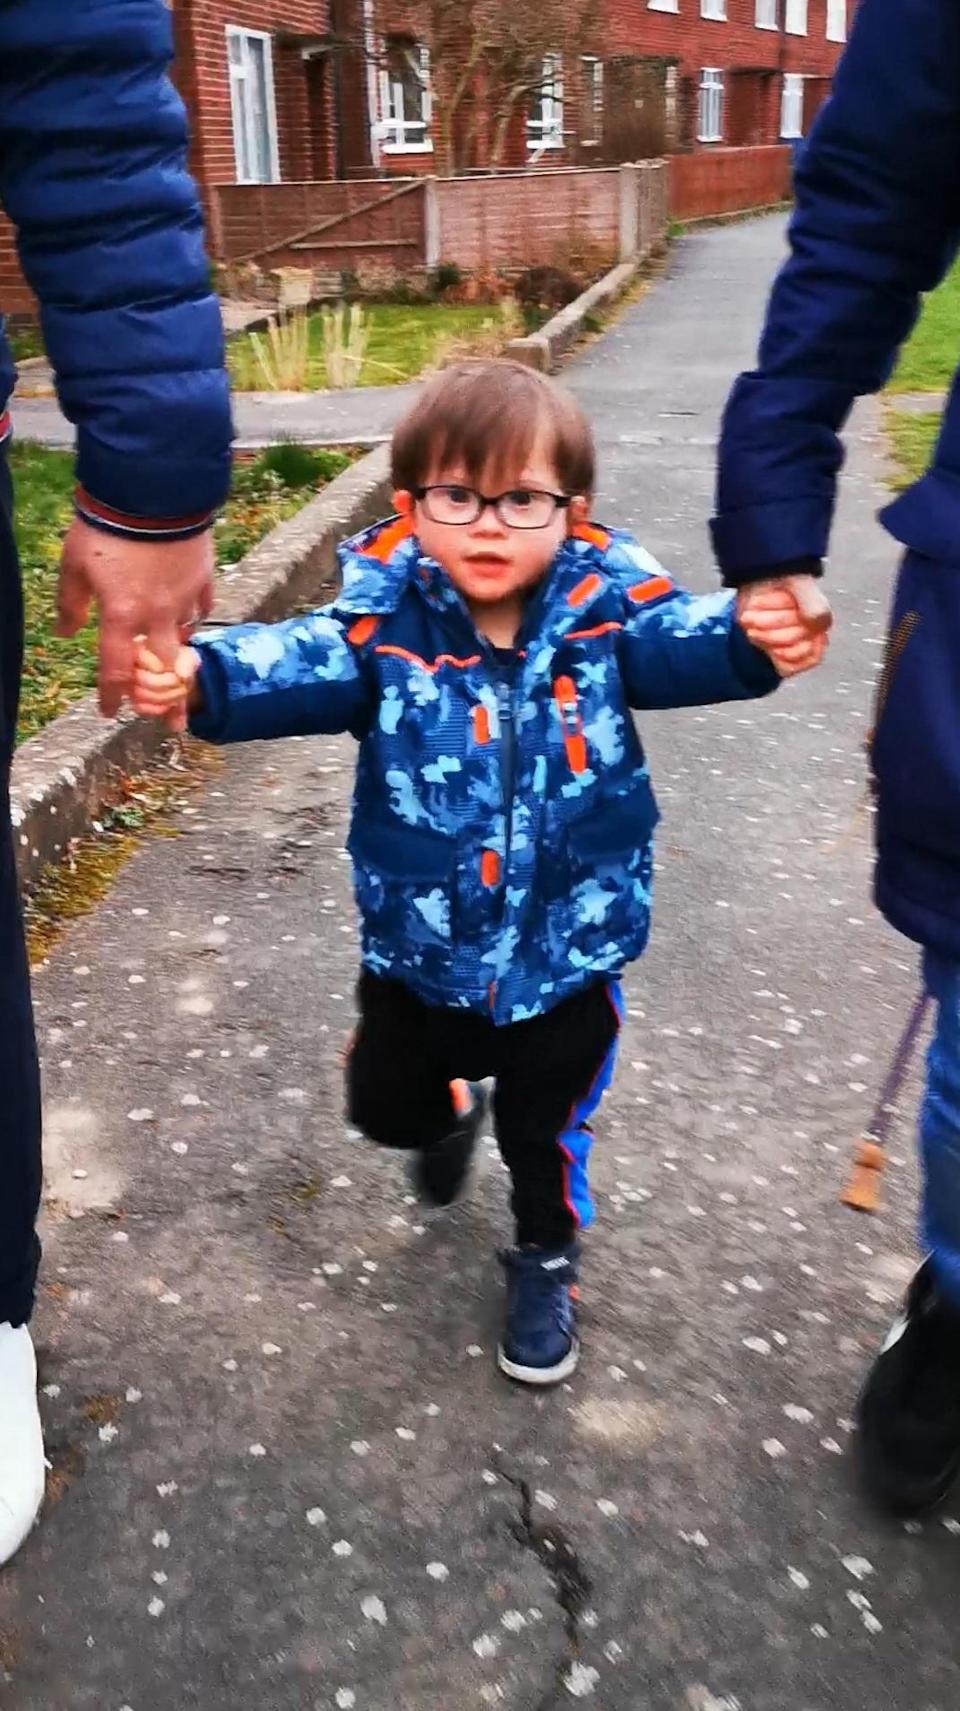 Tom Albrighton, 2, who is taking on a walking challenge ahead of World Down Syndrome Day